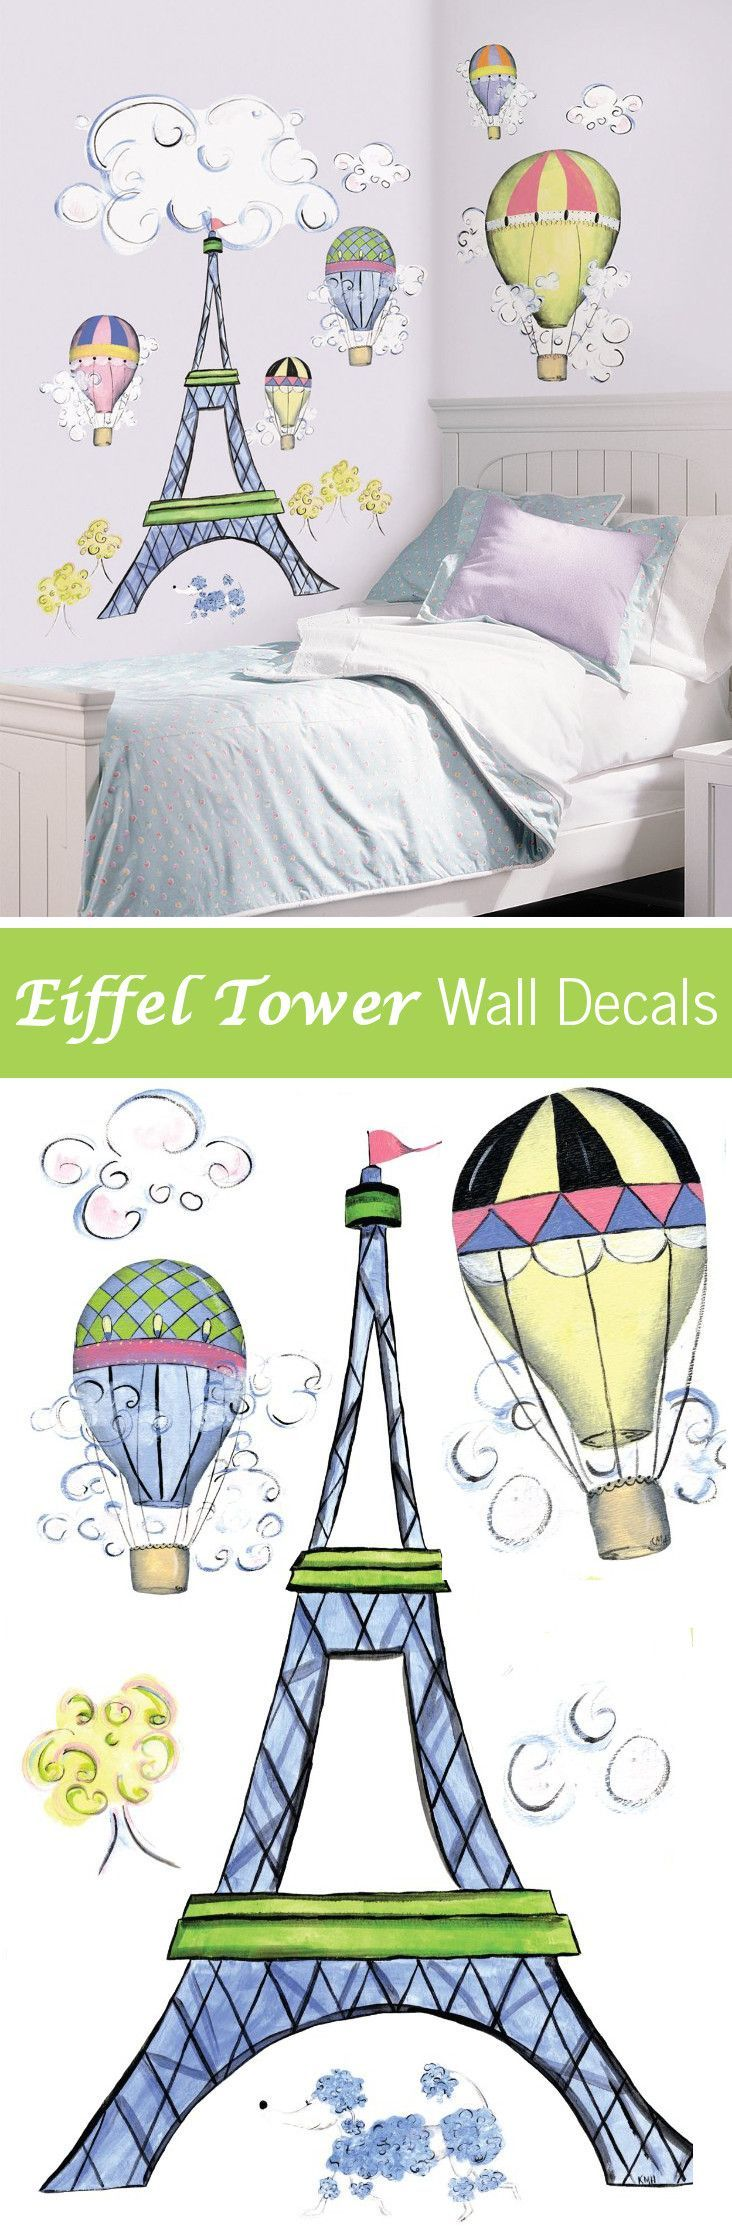 A cute and easy way to decorate a teen or preteen girls bedroom. Paris Eiffel Tower theme